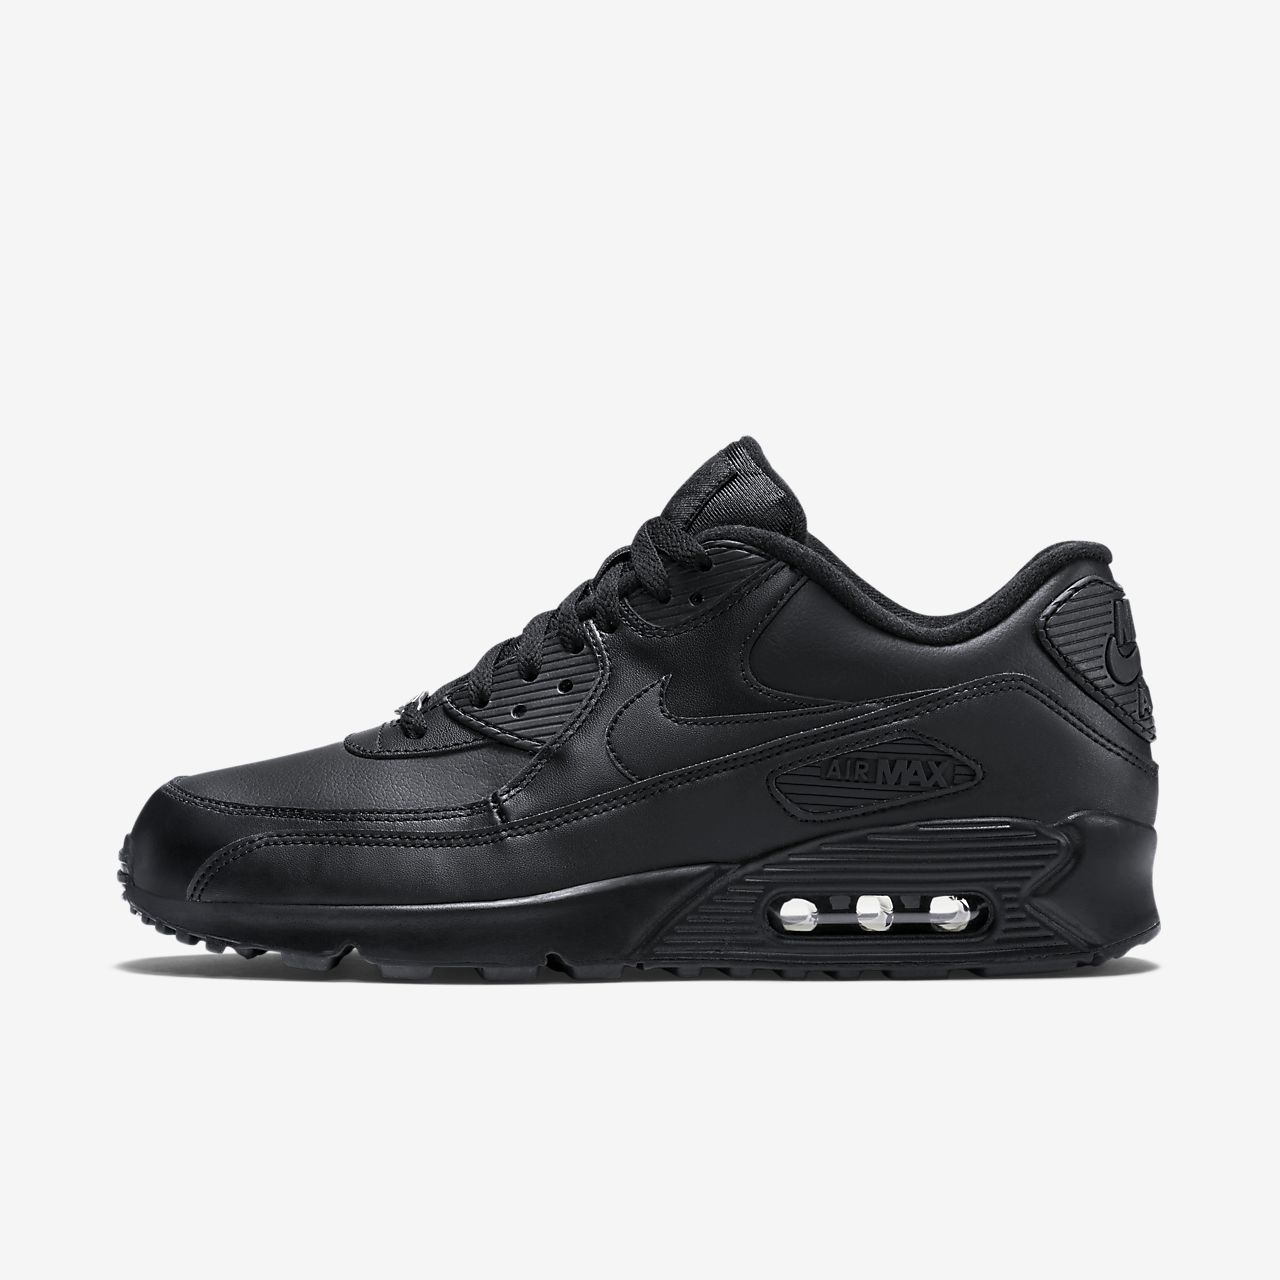 ... Chaussure Nike Air Max 90 Leather pour Homme